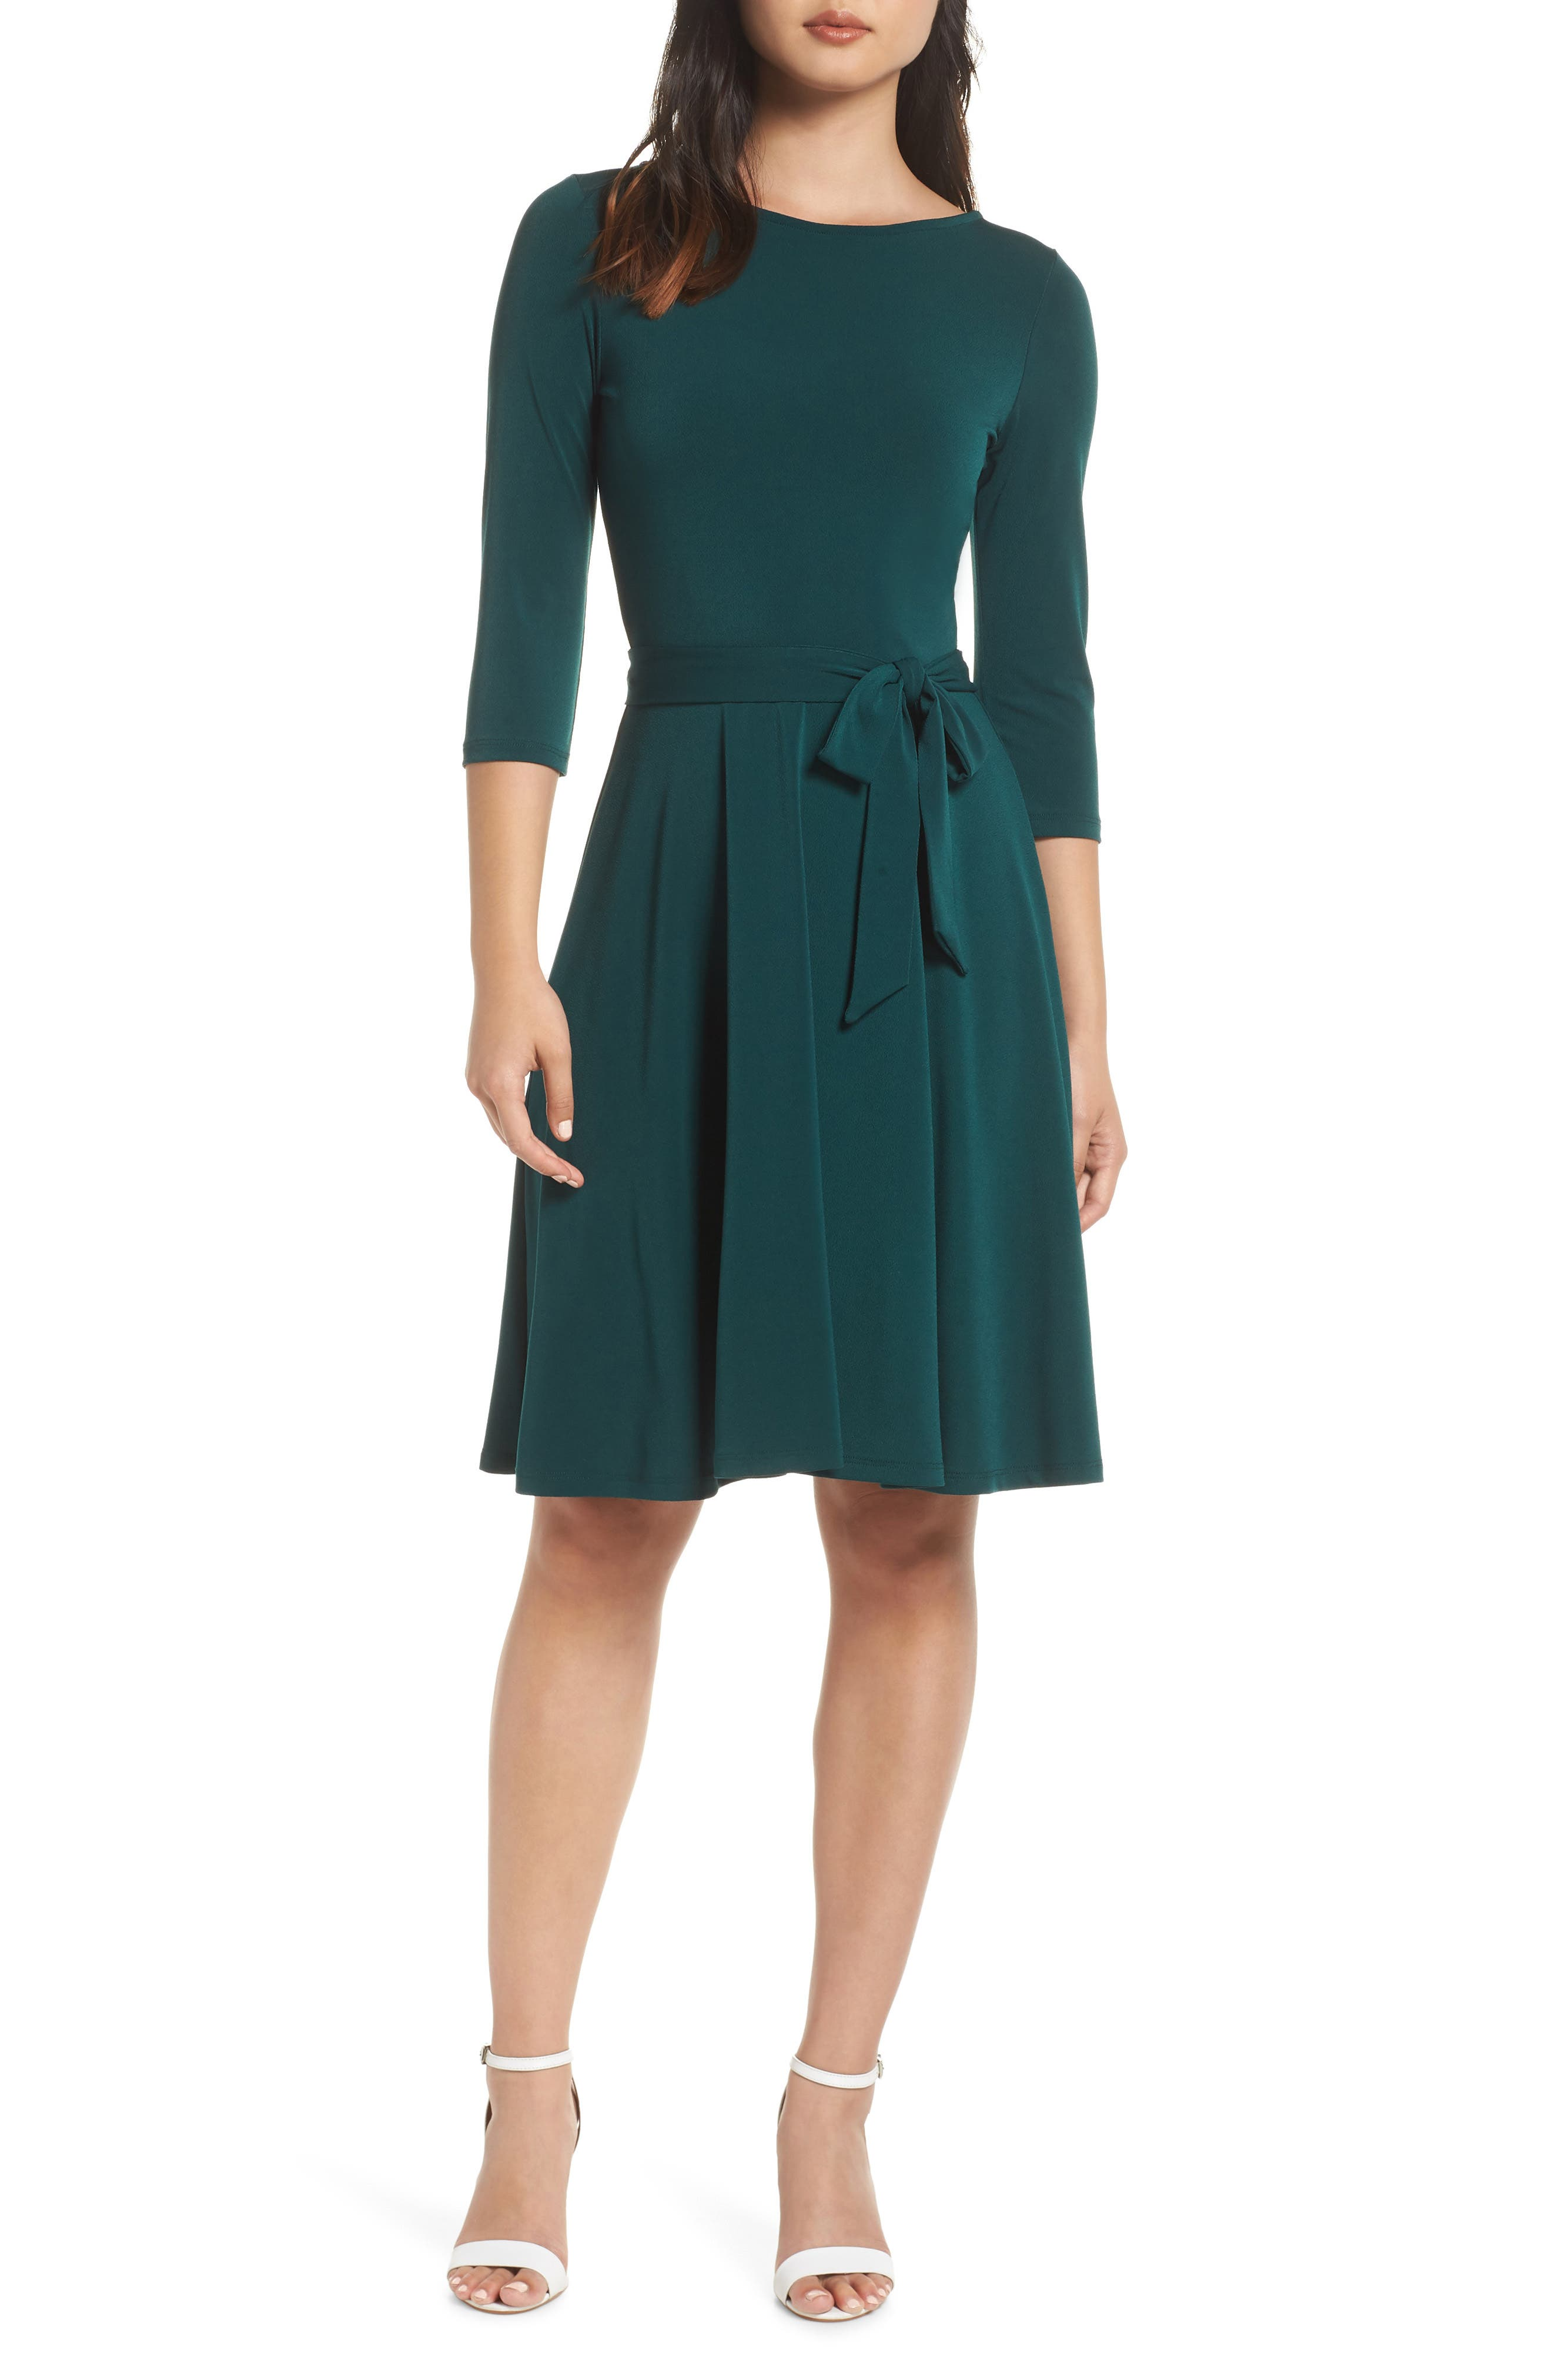 LEOTA Belted Print Jersey A-Line Dress in Forest Green